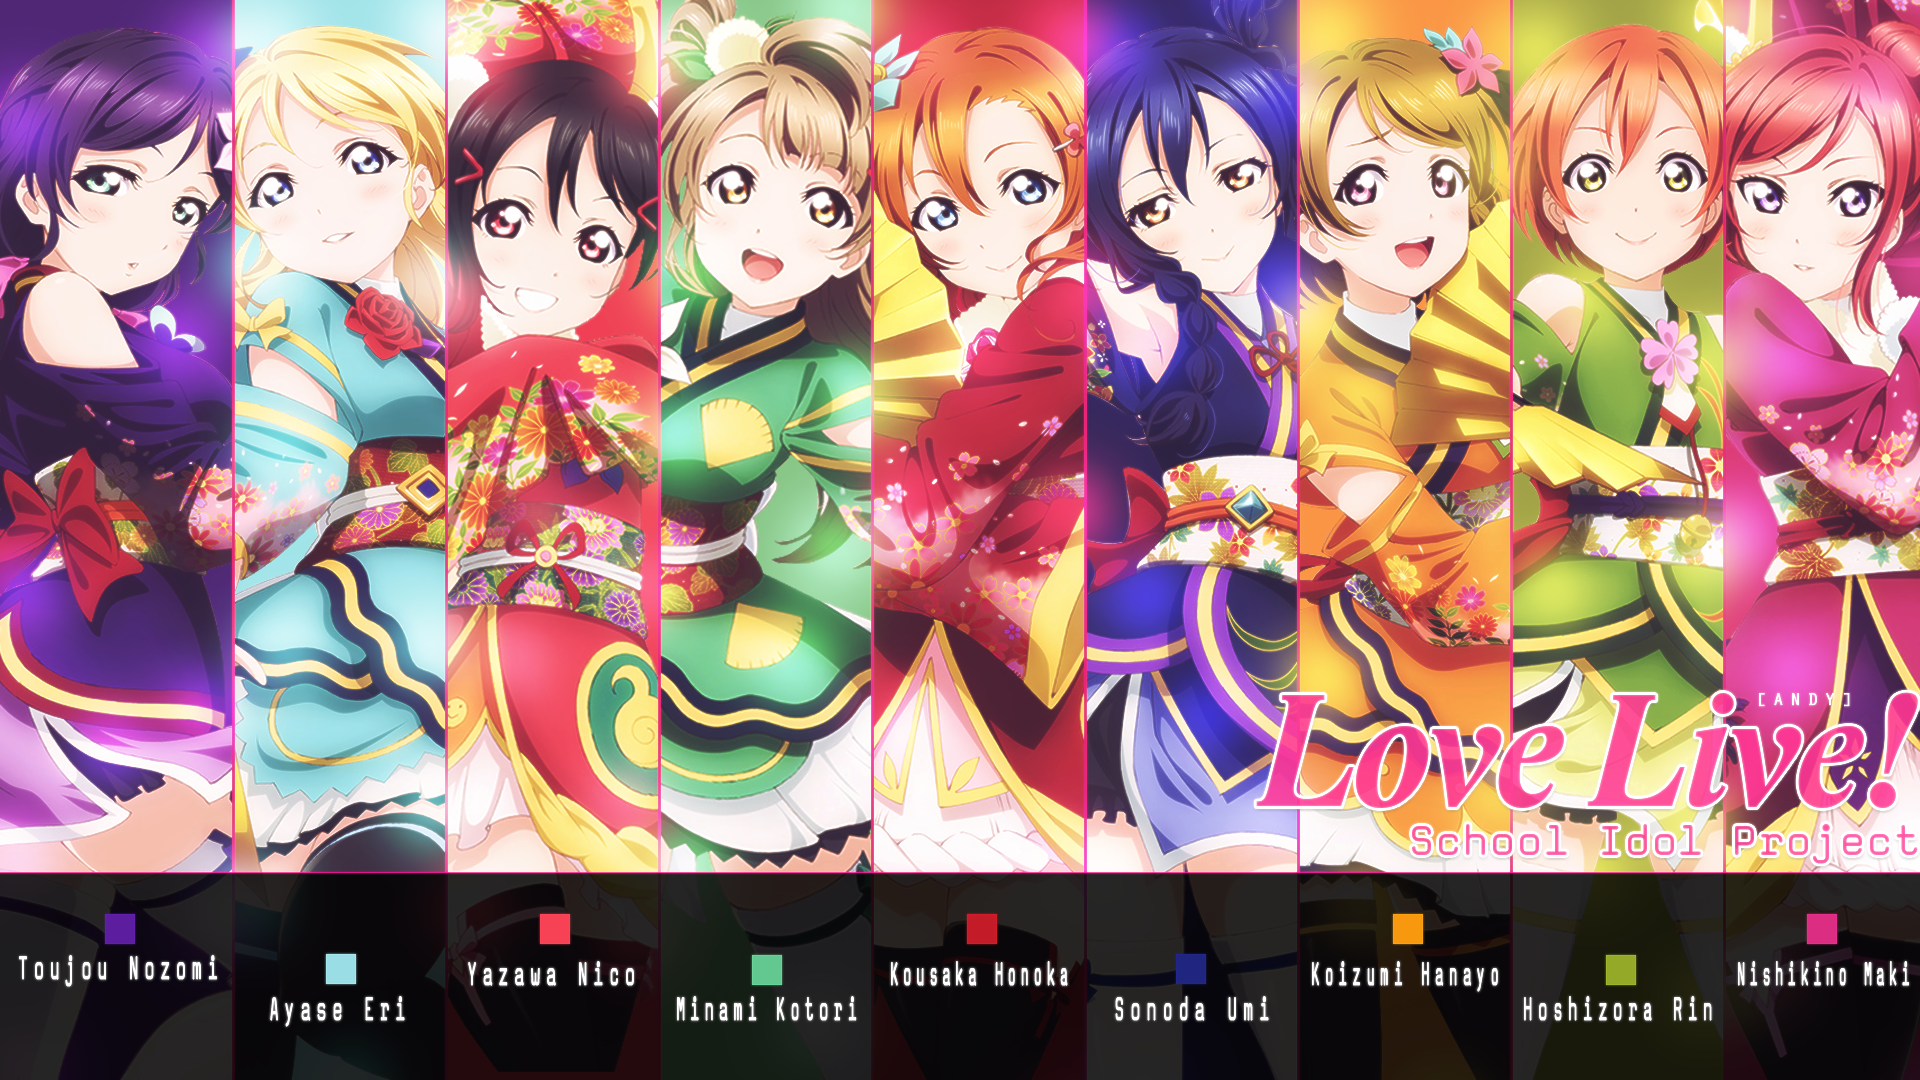 Love Live Iphone 4 Wallpaper : Love!Live! Anime Wallpapers HD 4K Download For Mobile ...